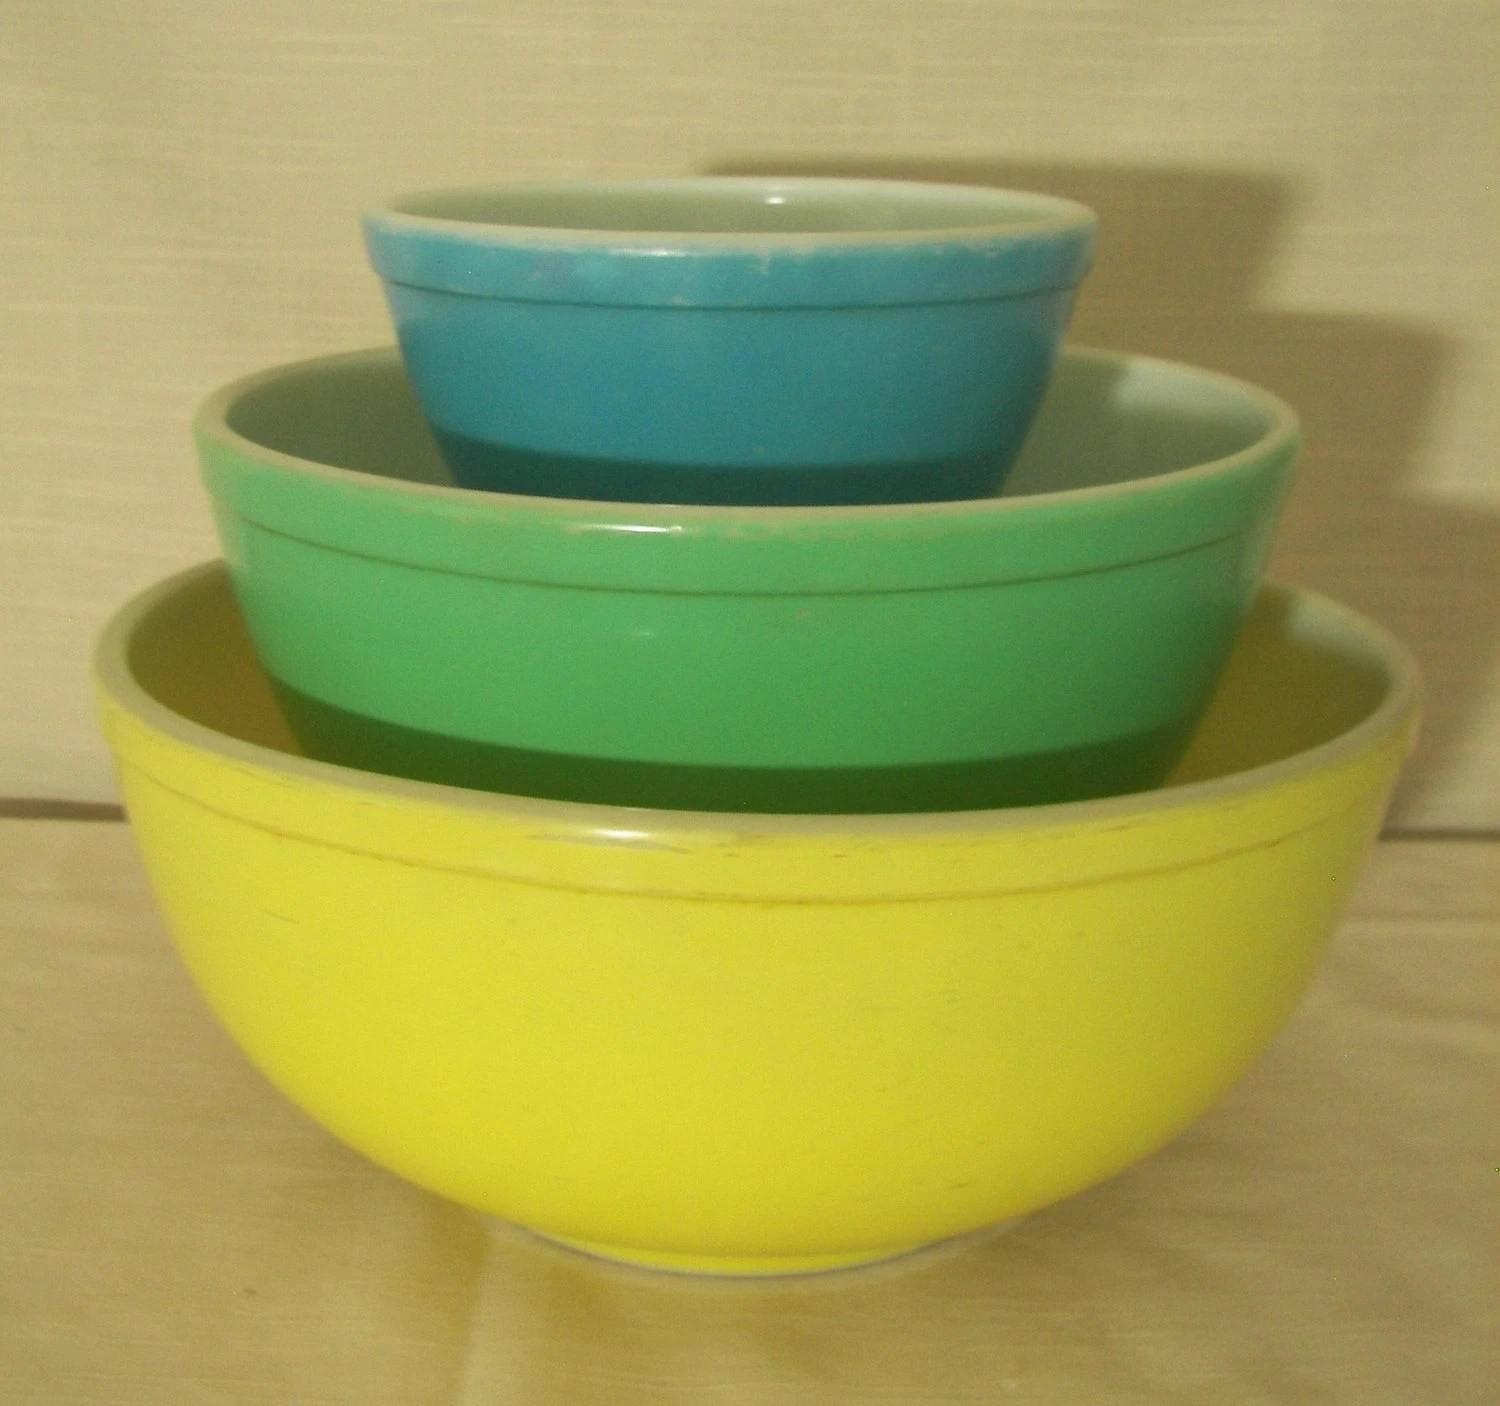 Vintage Pyrex Primary Mixing Bowls Set of 3